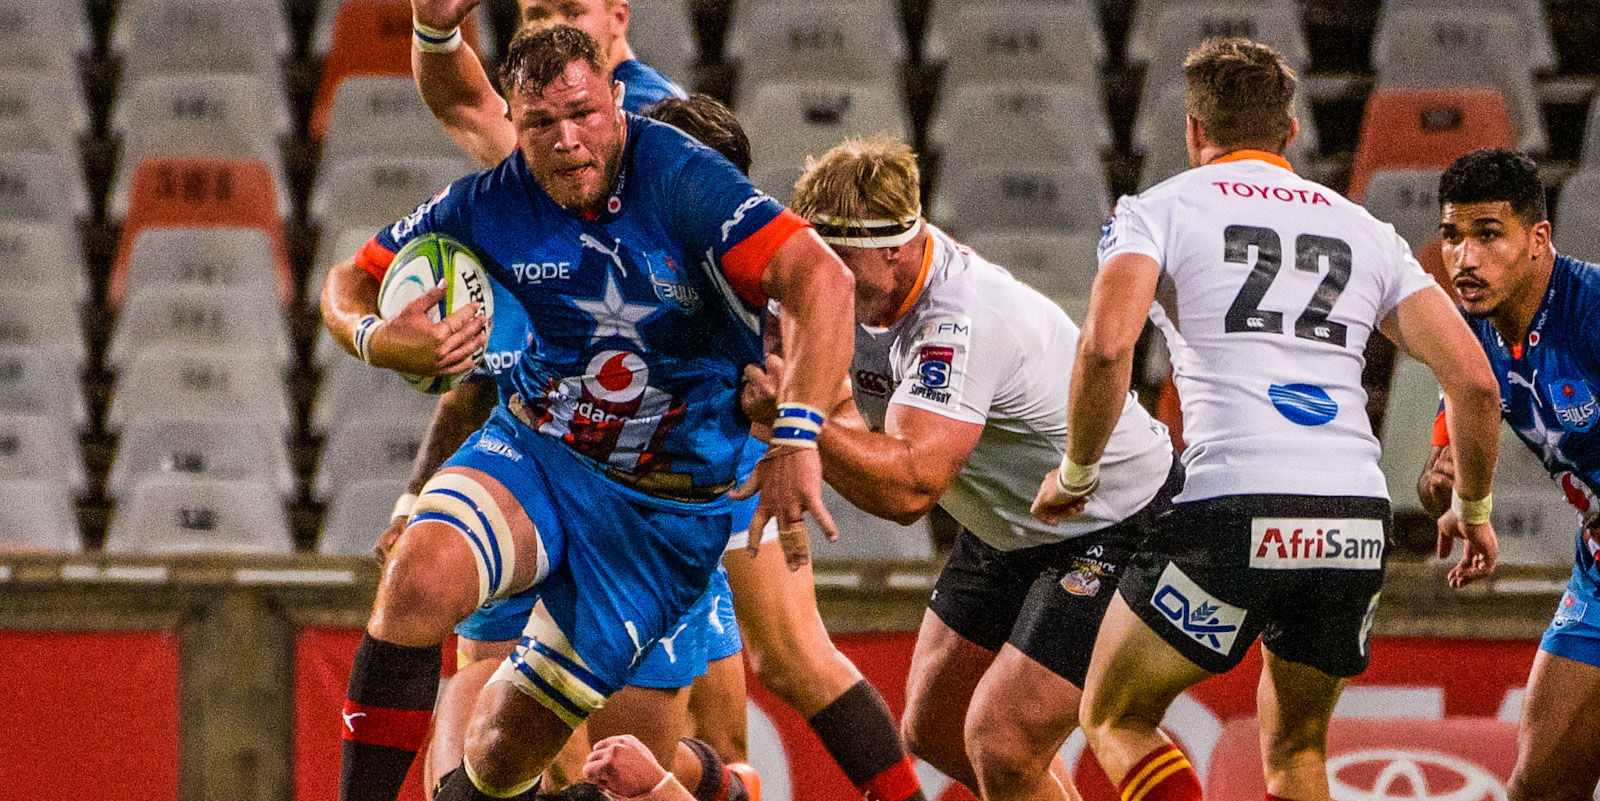 Vodacom Bulls captain Duane Vermeulen takes the ball up.